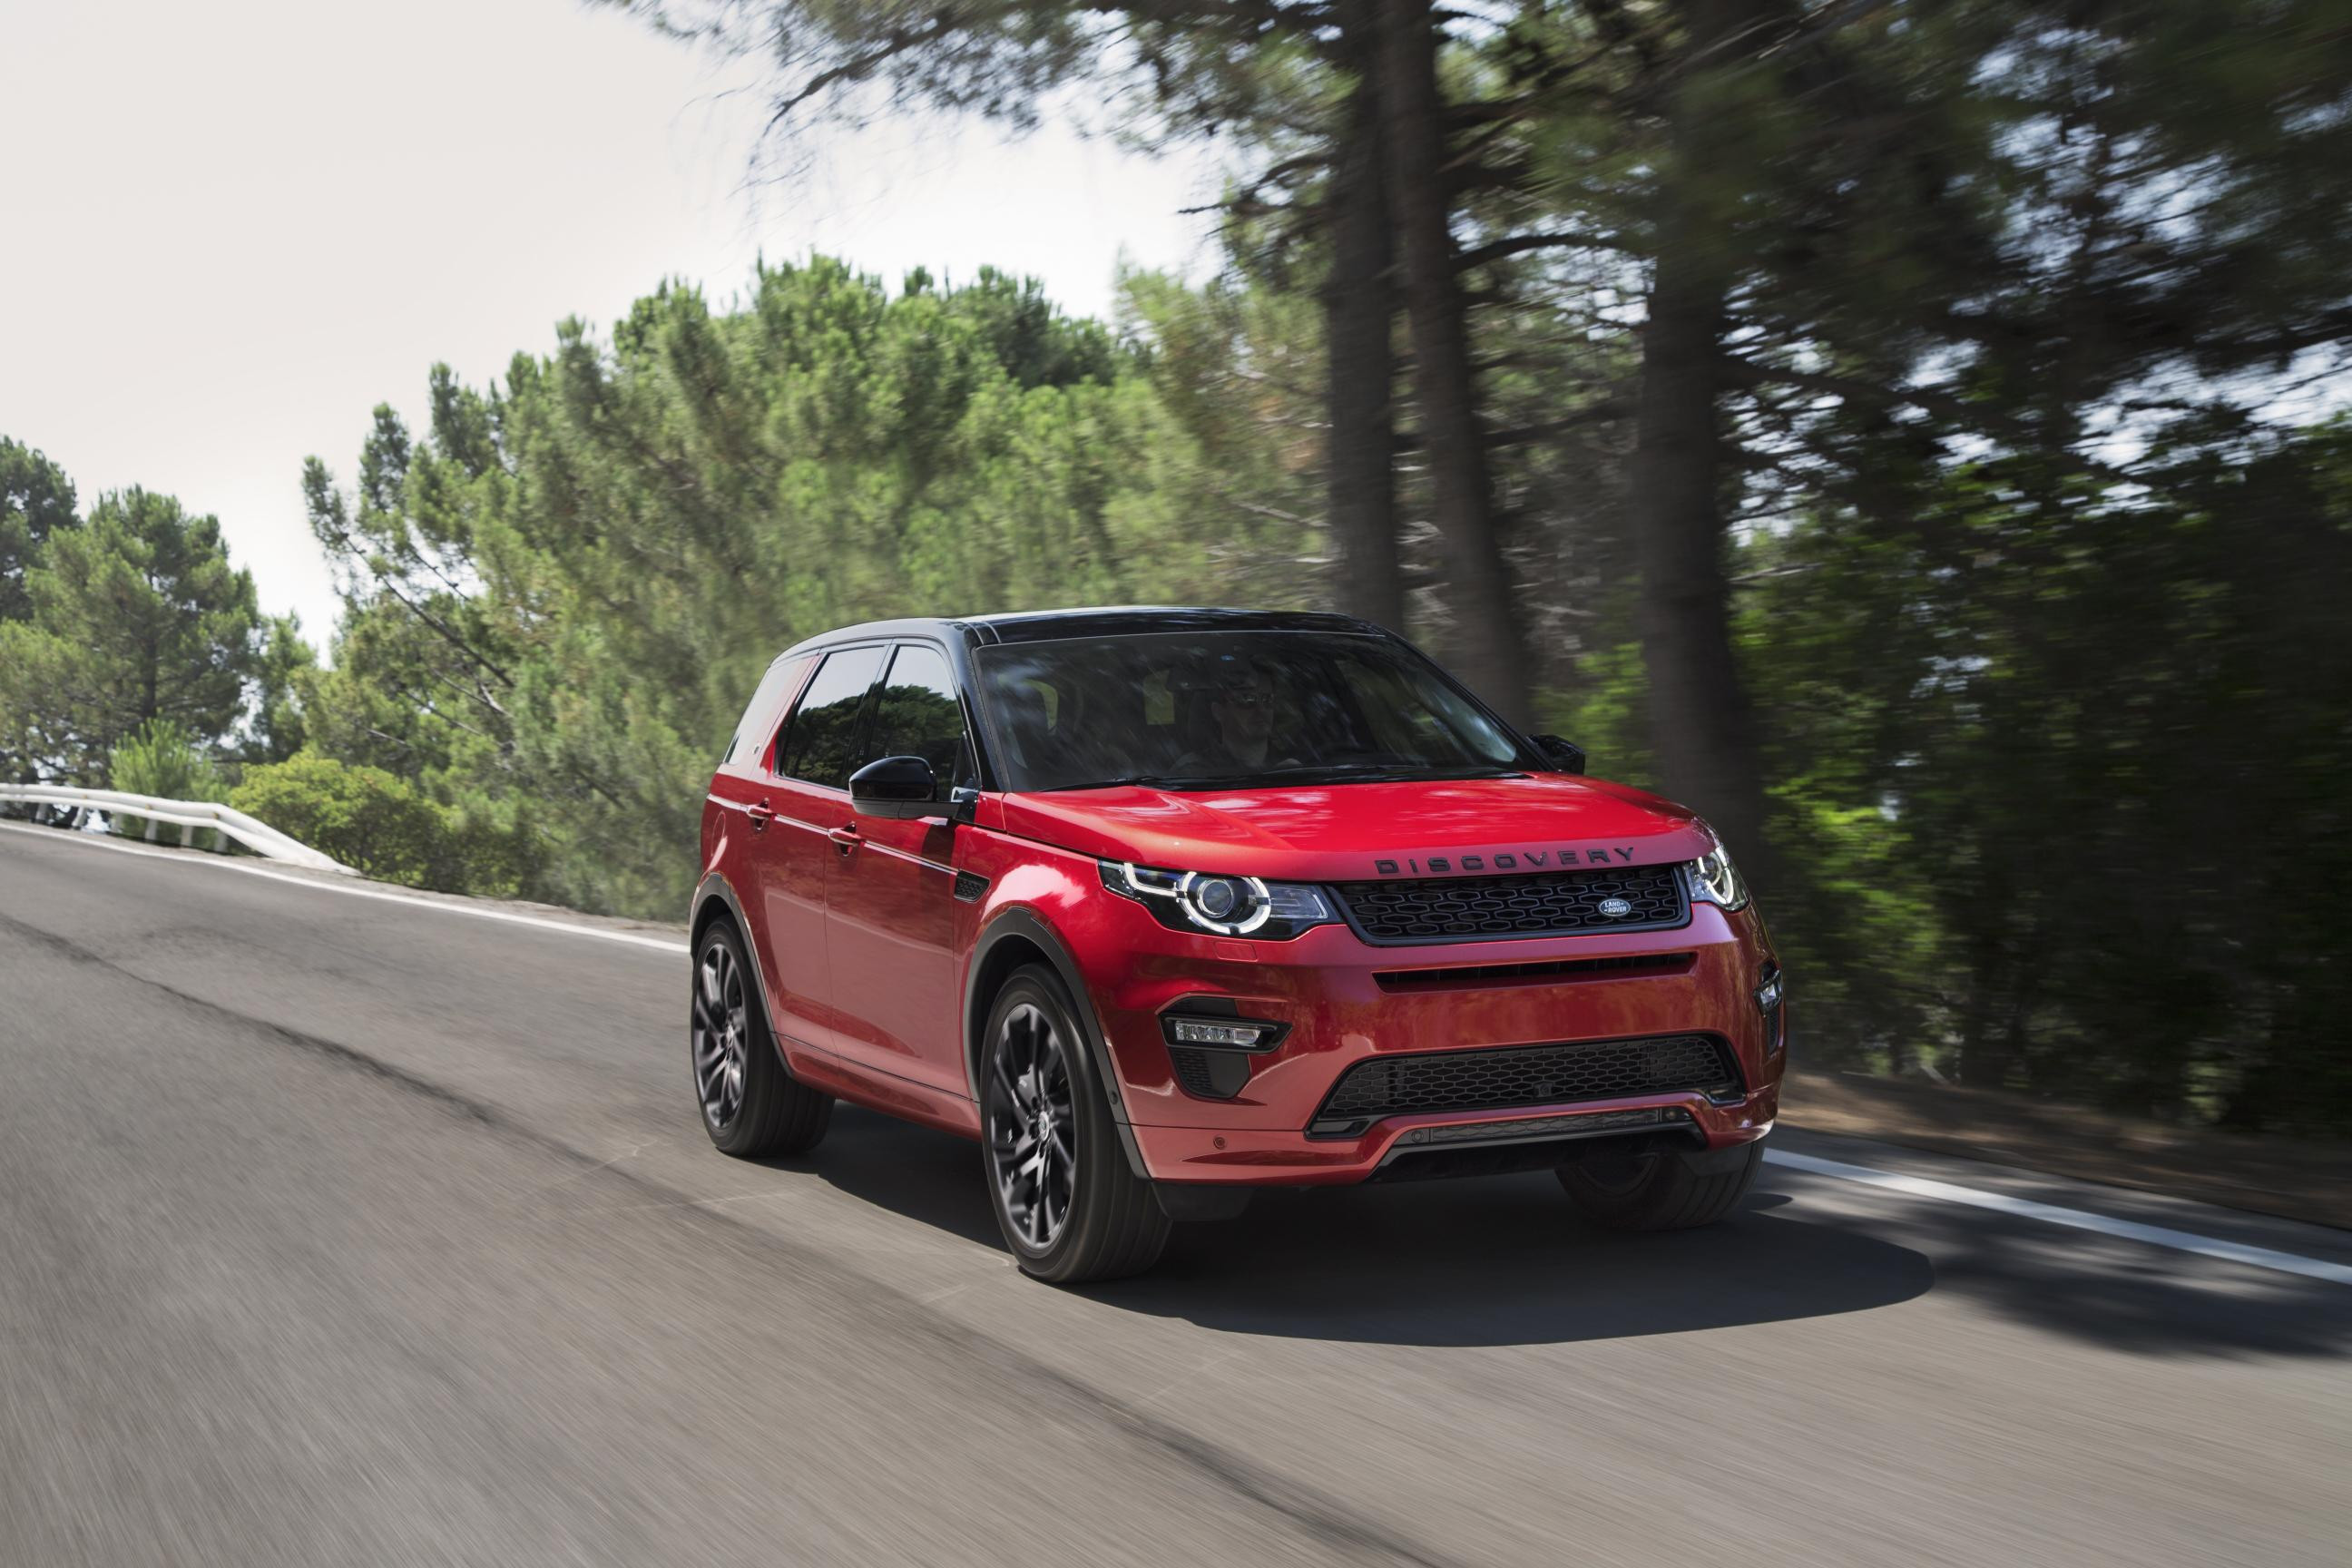 Red Land Rover Discovery Sport driving towards you